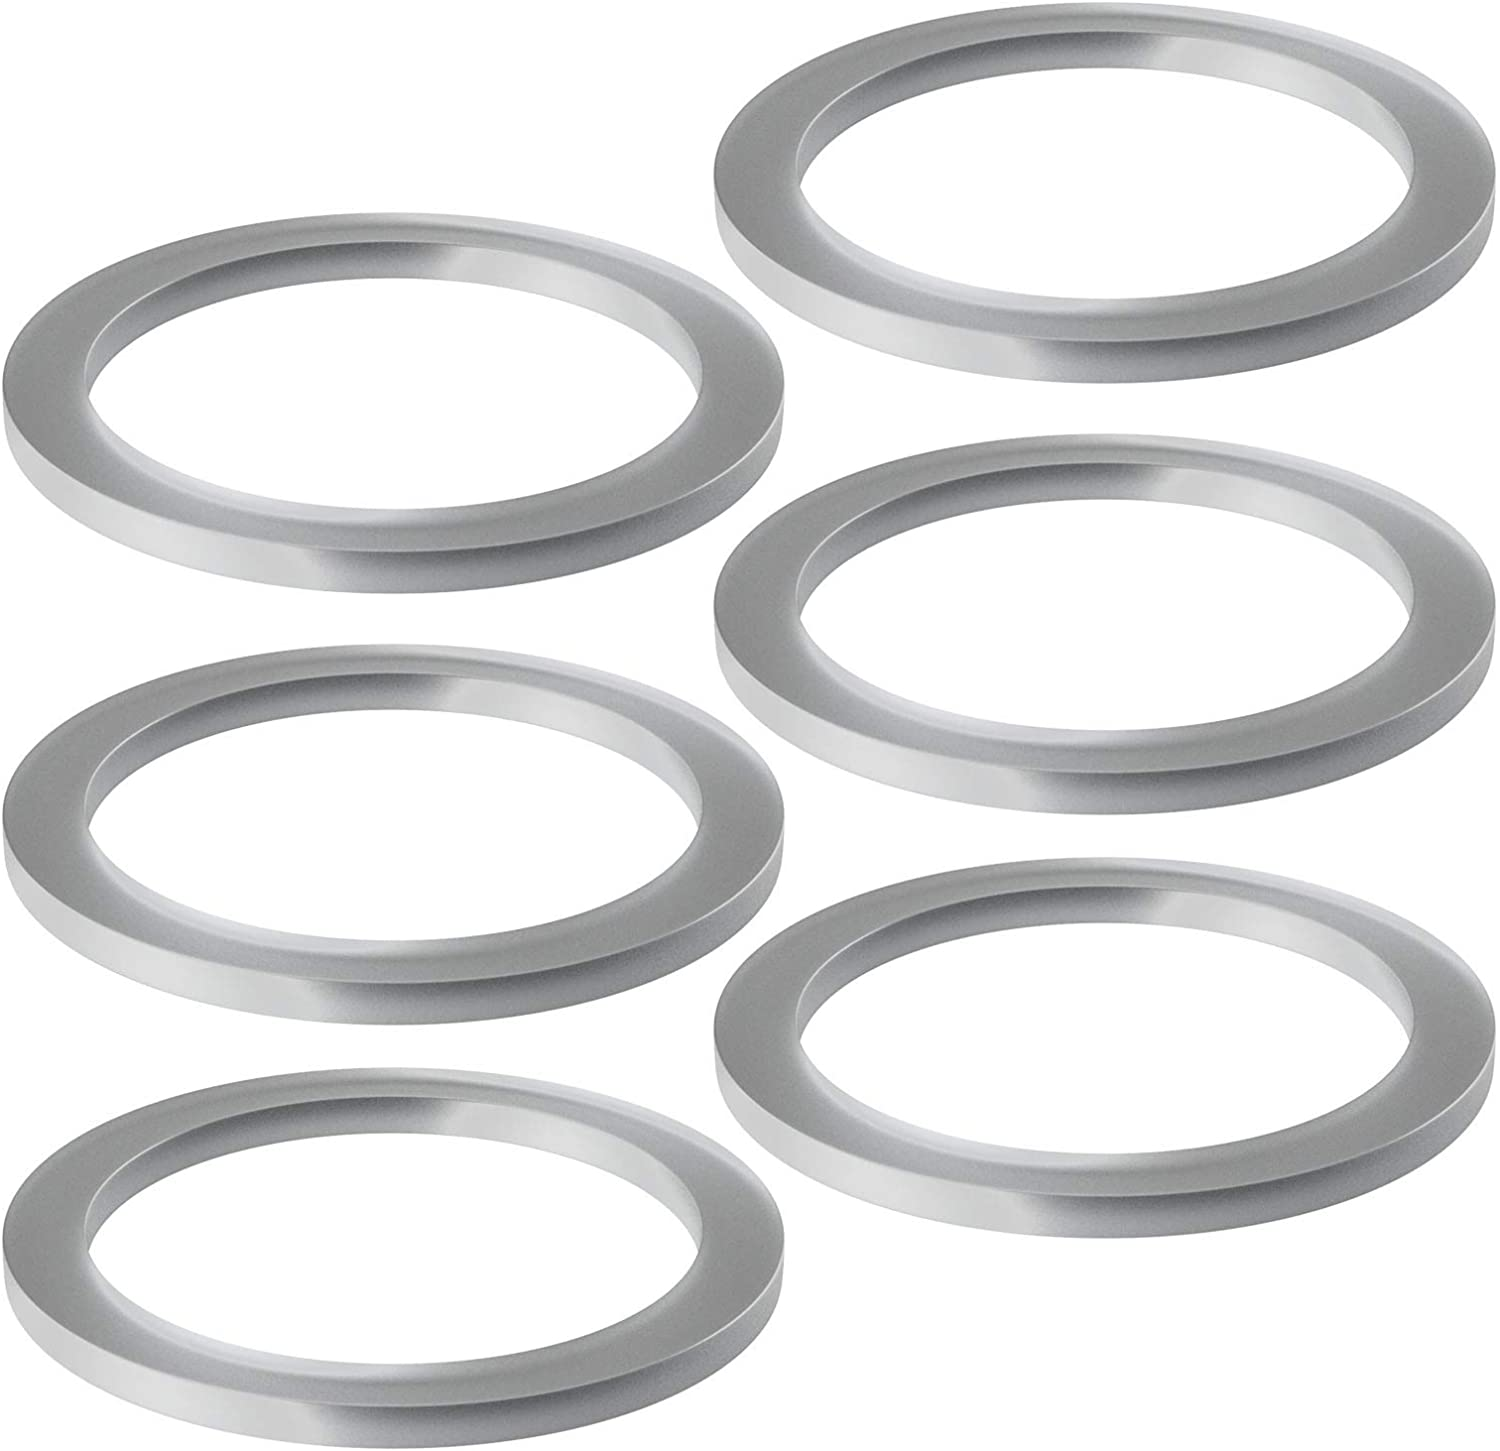 6-pack Blender Replacement Part Sealing Gasket Rubber O-Ring Gasket Compatible with Cuisinart CBT-500, SB5600, CB600, SPB-456-2B and Oster & Osterizer Blenders